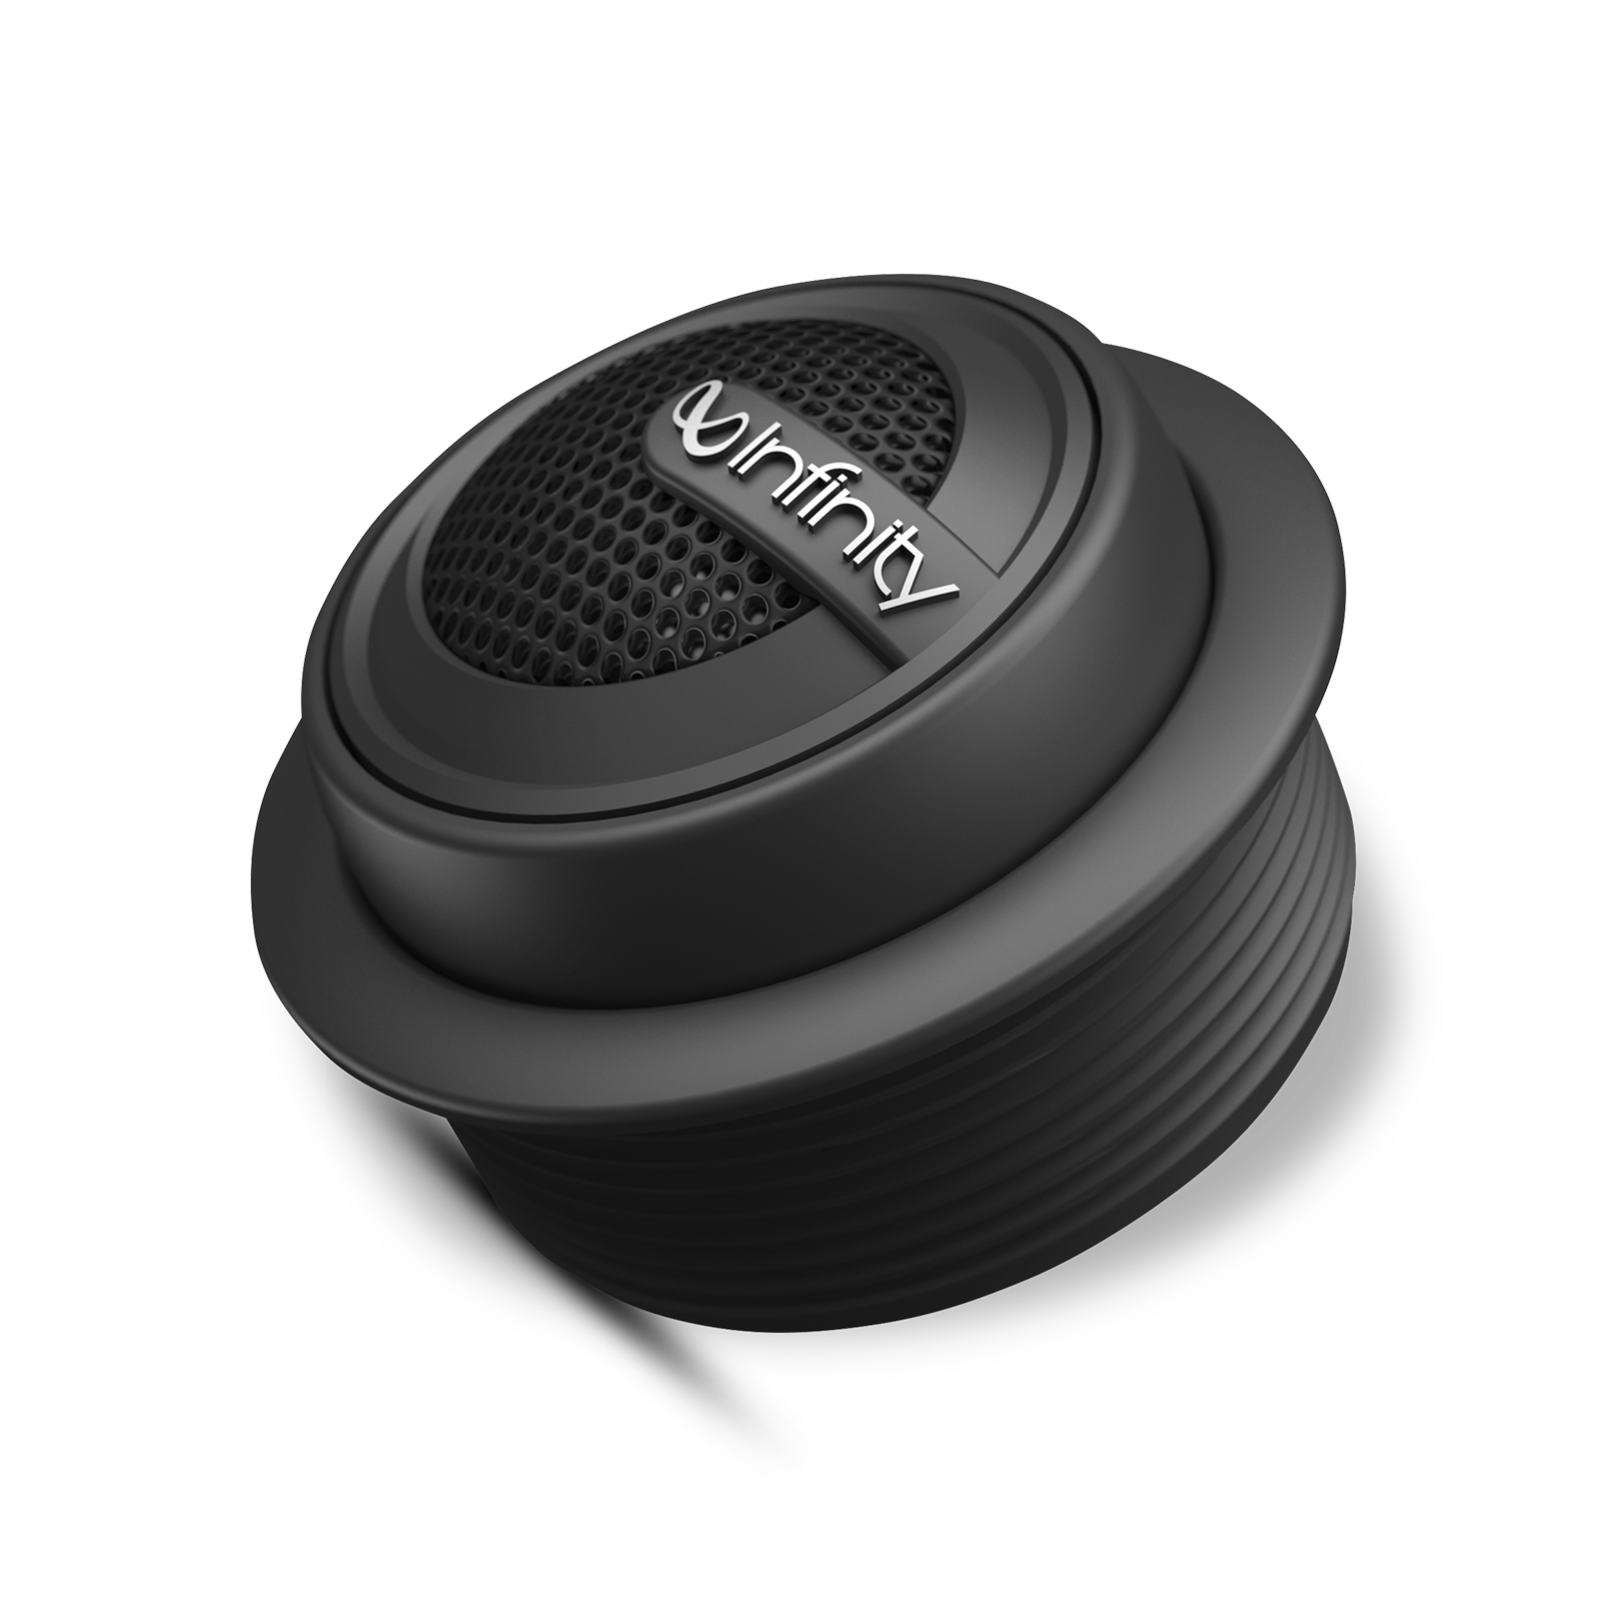 """Reference 075tx - Black - 3/4"""" (19mm) stand-alone component tweeter with passive crossover network - Hero"""